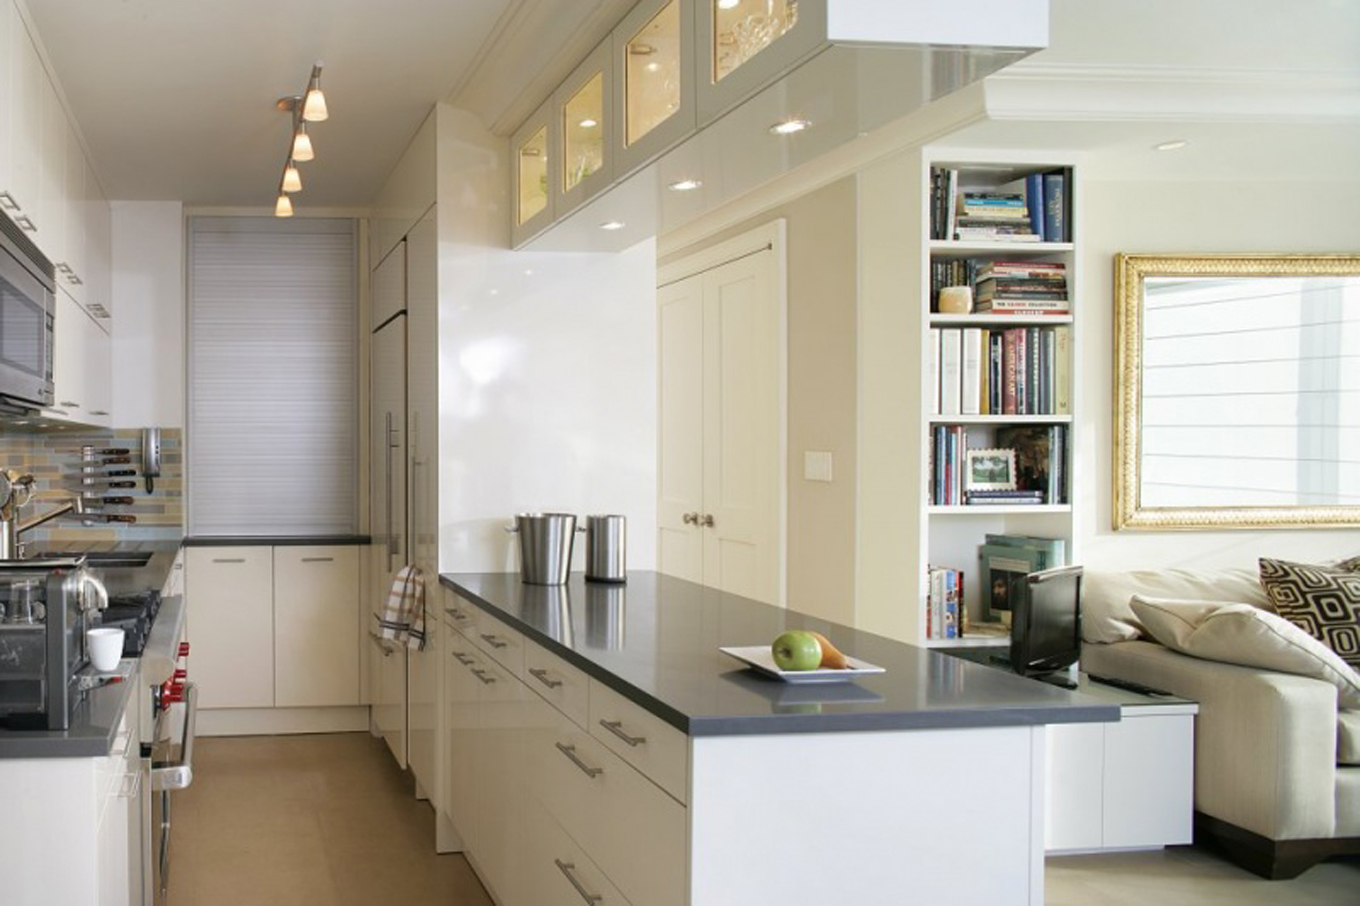 kitchen plans for small spaces select kitchen design Kitchen plans for small spaces